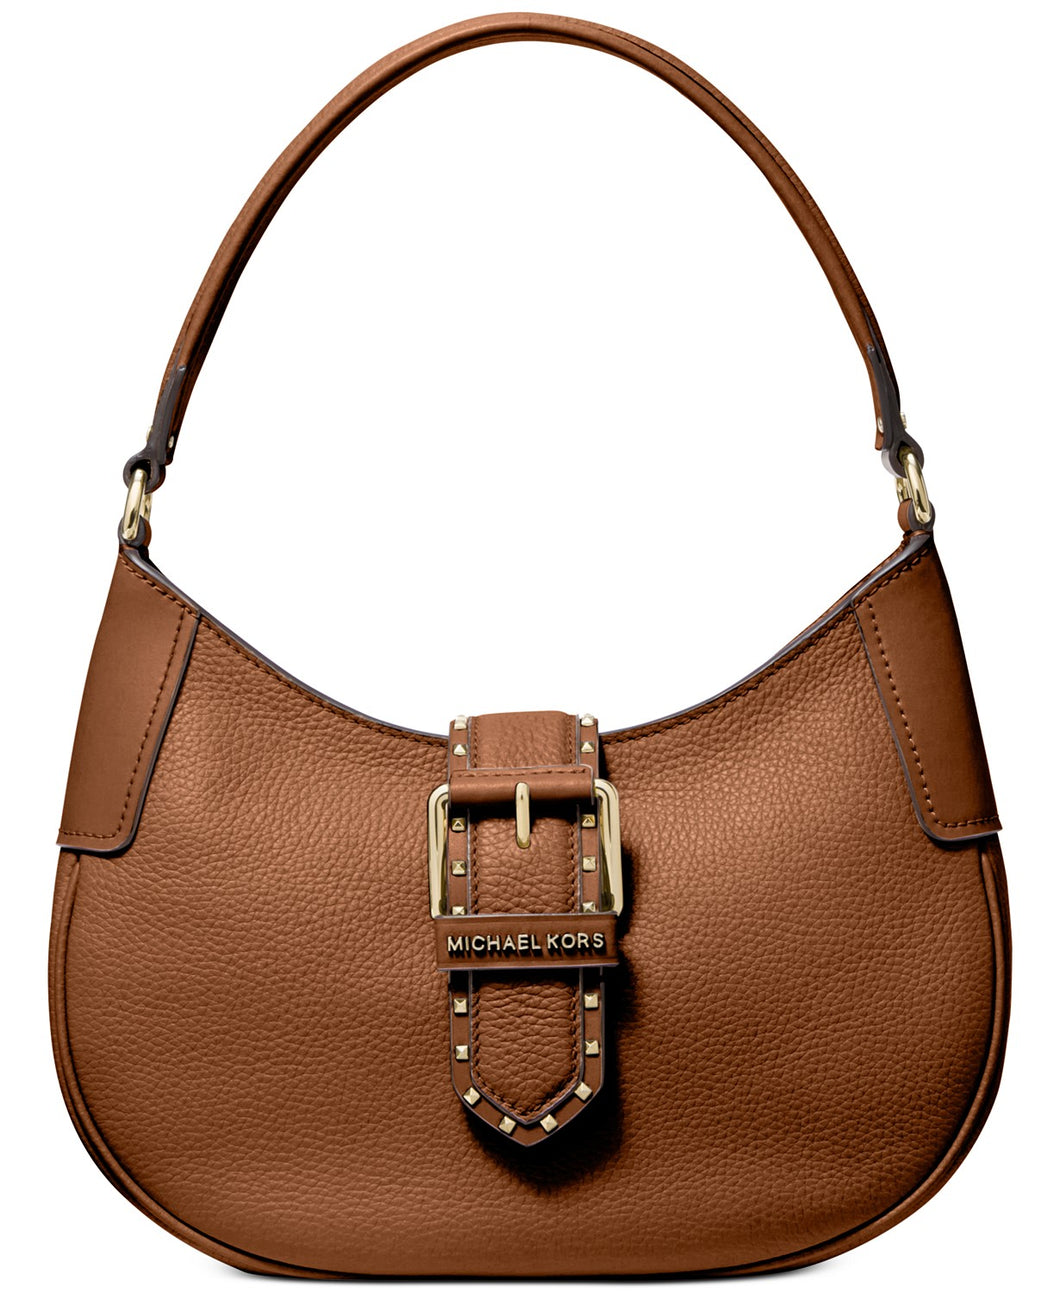 MICHAEL KORS - Lillian Genuine Leather Shoulder Bag (Brown/Acorn)